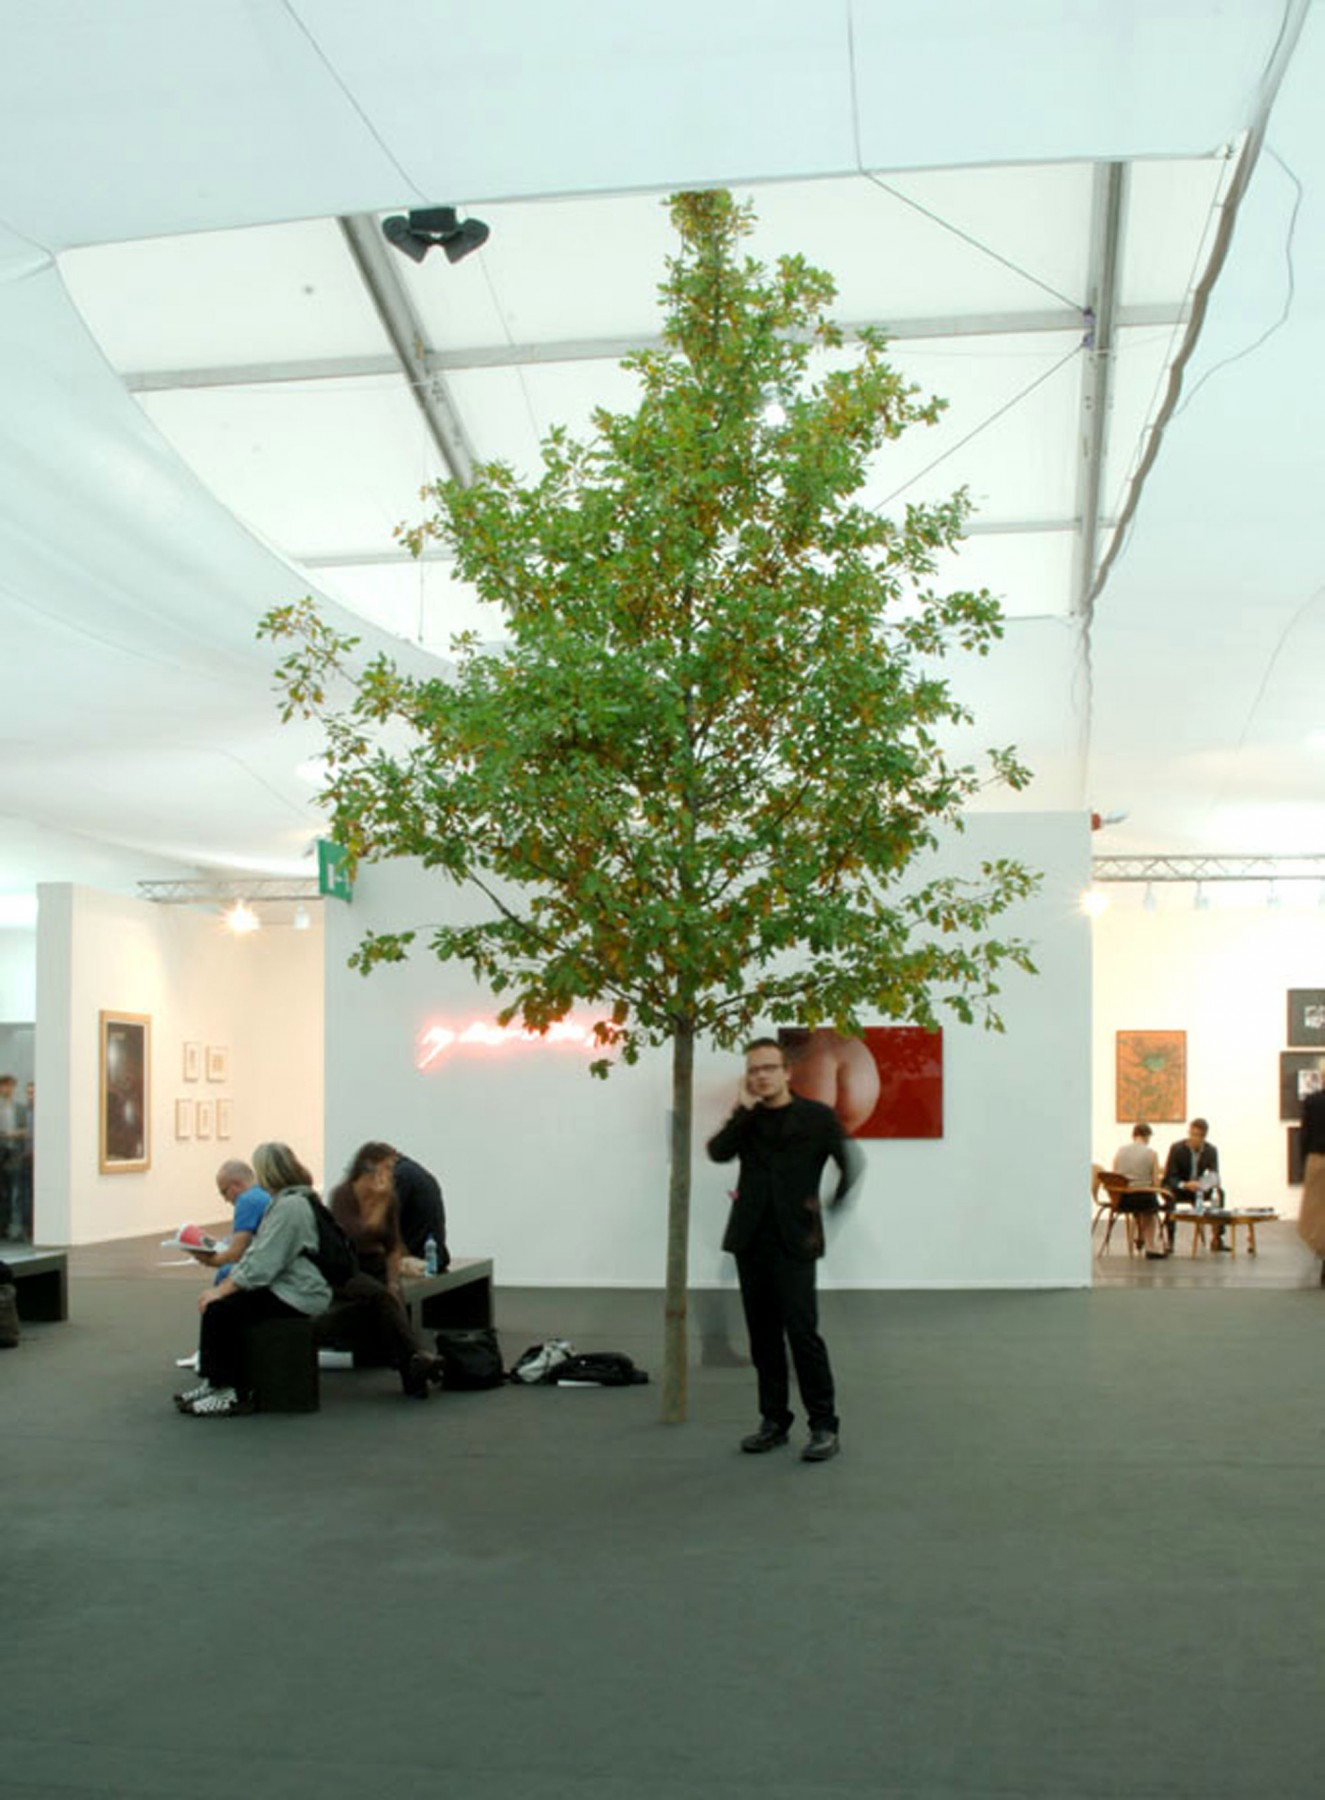 Jamie-Fobert-Architects Frieze-Art-Fair- temporary structure-regents-park -trees-gallery